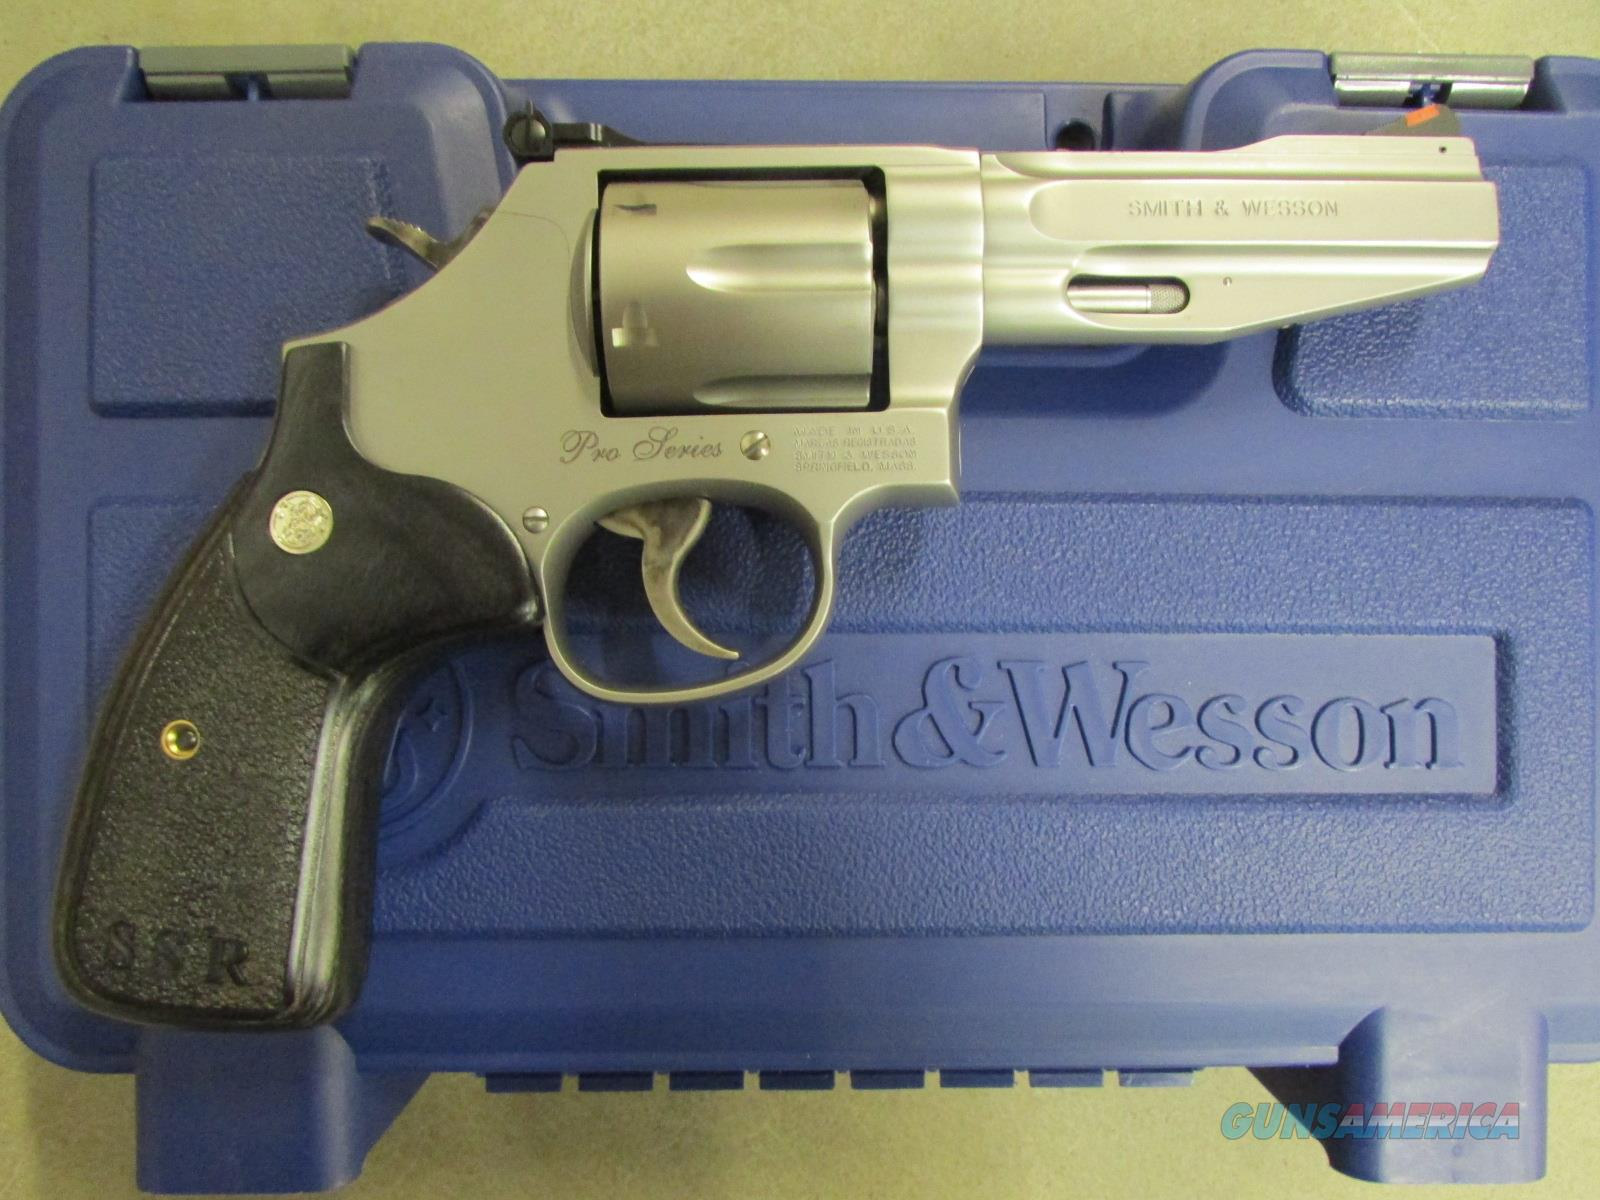 Smith & Wesson Model 686 SSR Pro Series .357 Magnum 178012  Guns > Pistols > Smith & Wesson Revolvers > Performance Center